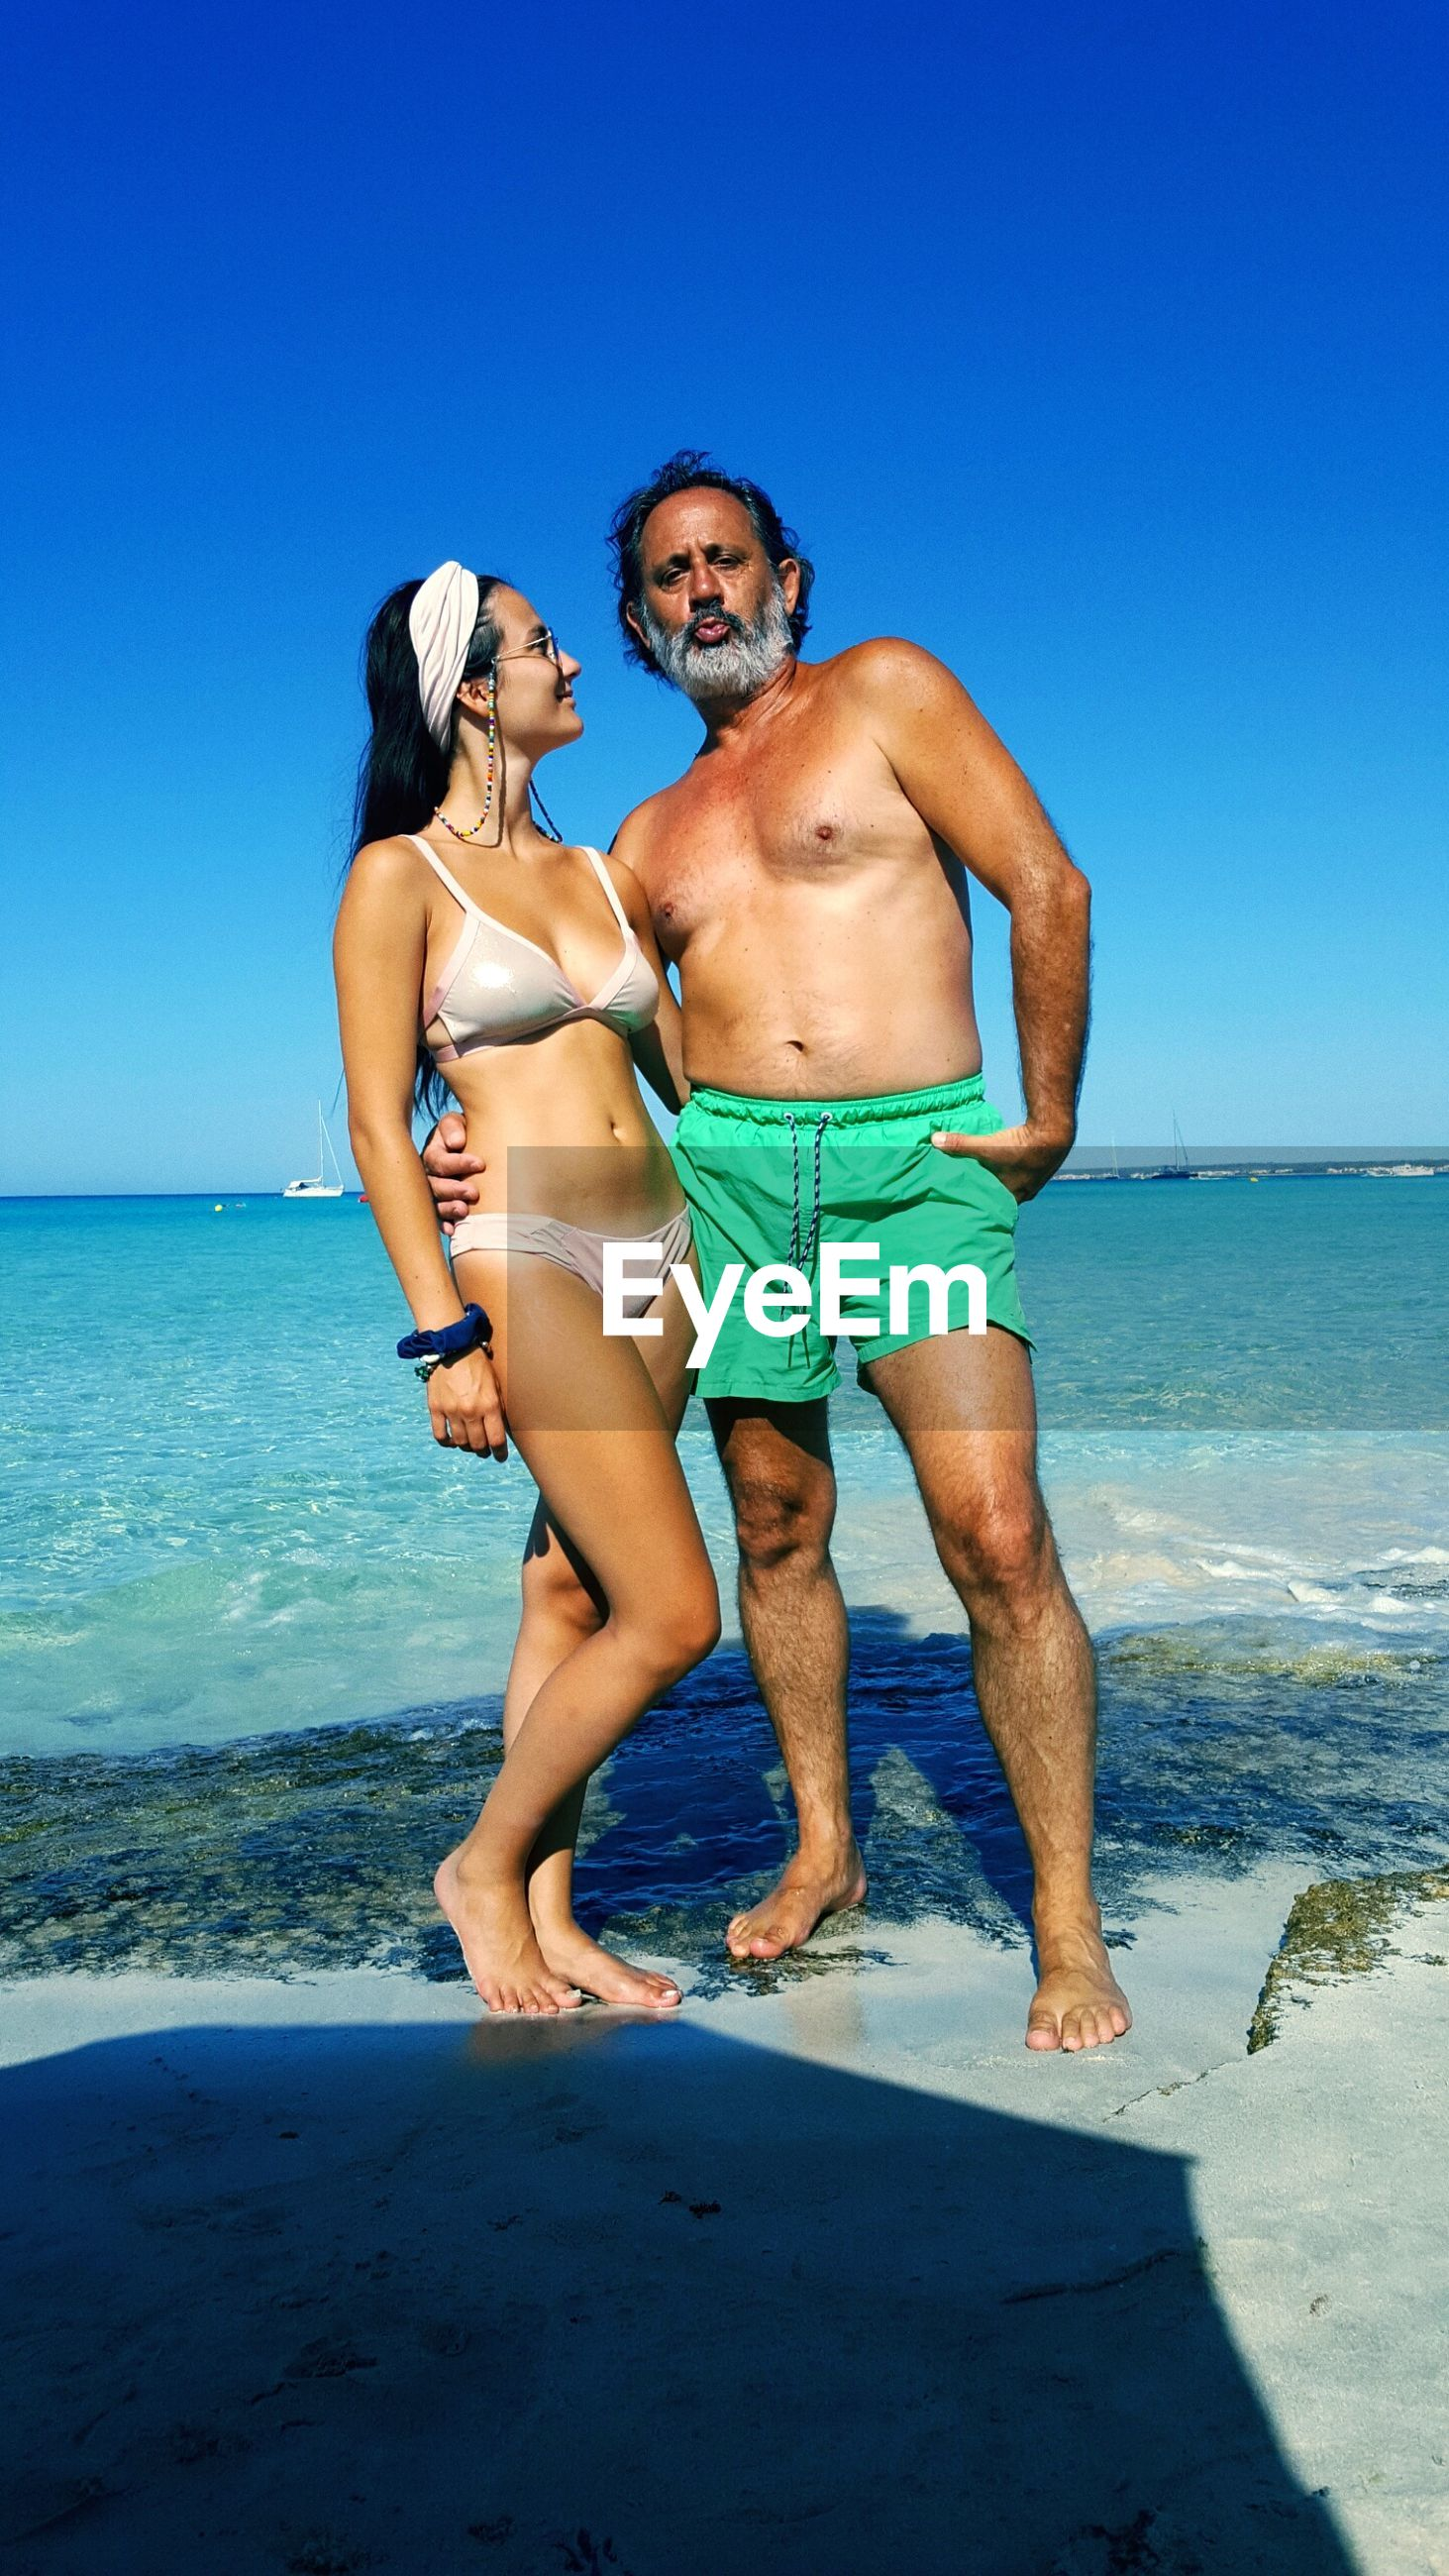 two people, sea, togetherness, full length, real people, standing, beach, love, shirtless, leisure activity, clear sky, nature, young women, young adult, men, day, young men, bikini, blue, water, beauty in nature, horizon over water, lifestyles, bonding, vacations, outdoors, scenics, sky, adult, people, adults only